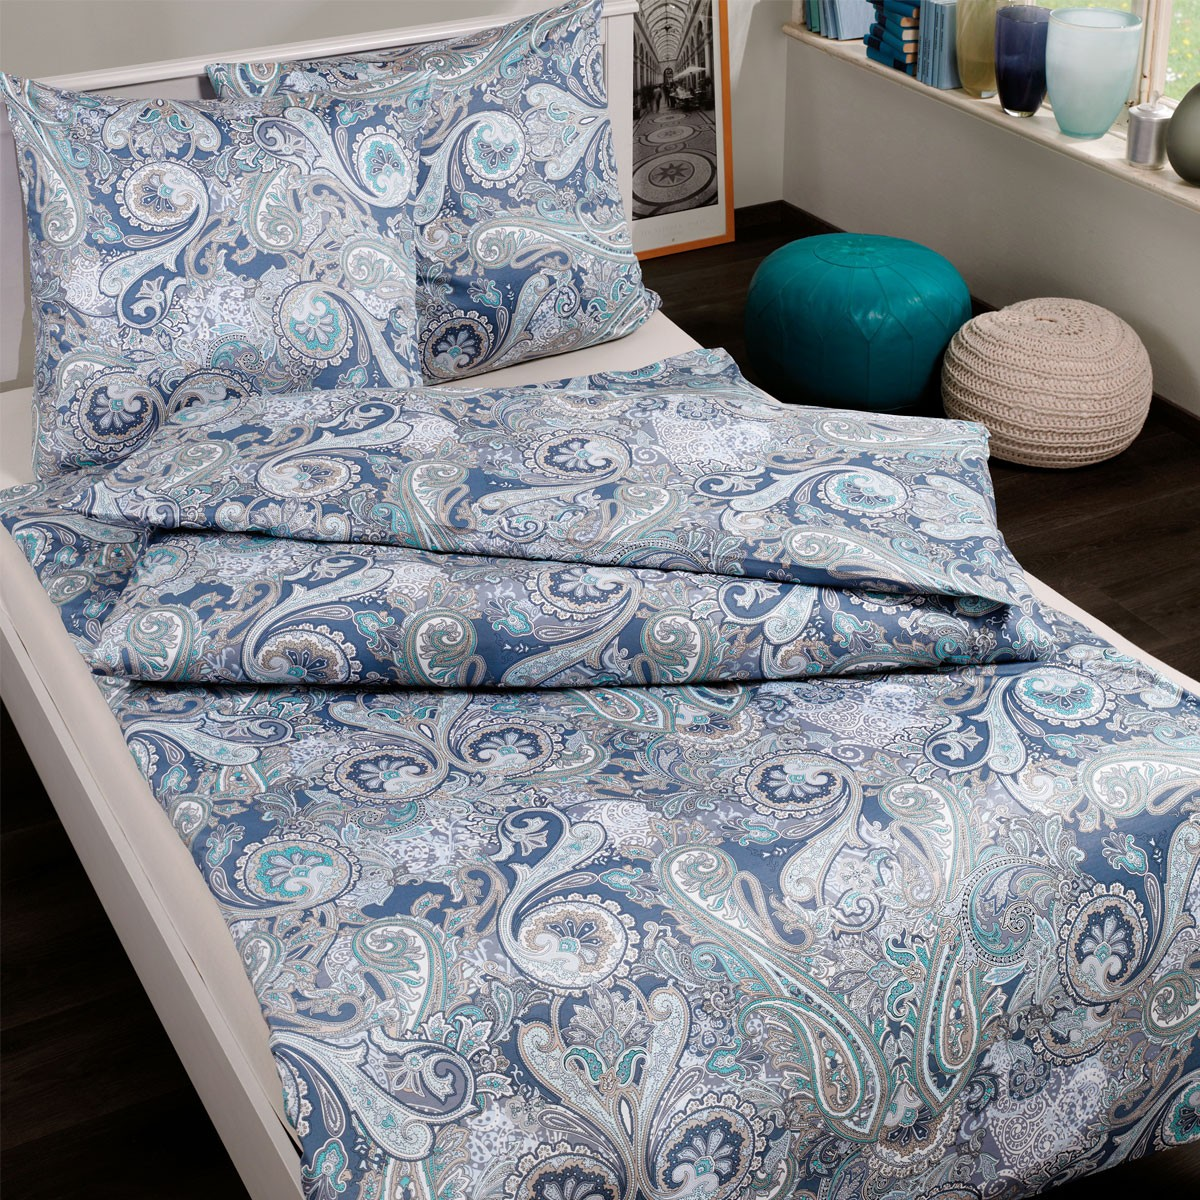 interlock jersey bettw sche estella elarda blaue jerseybettw sche mit paisley ebay. Black Bedroom Furniture Sets. Home Design Ideas